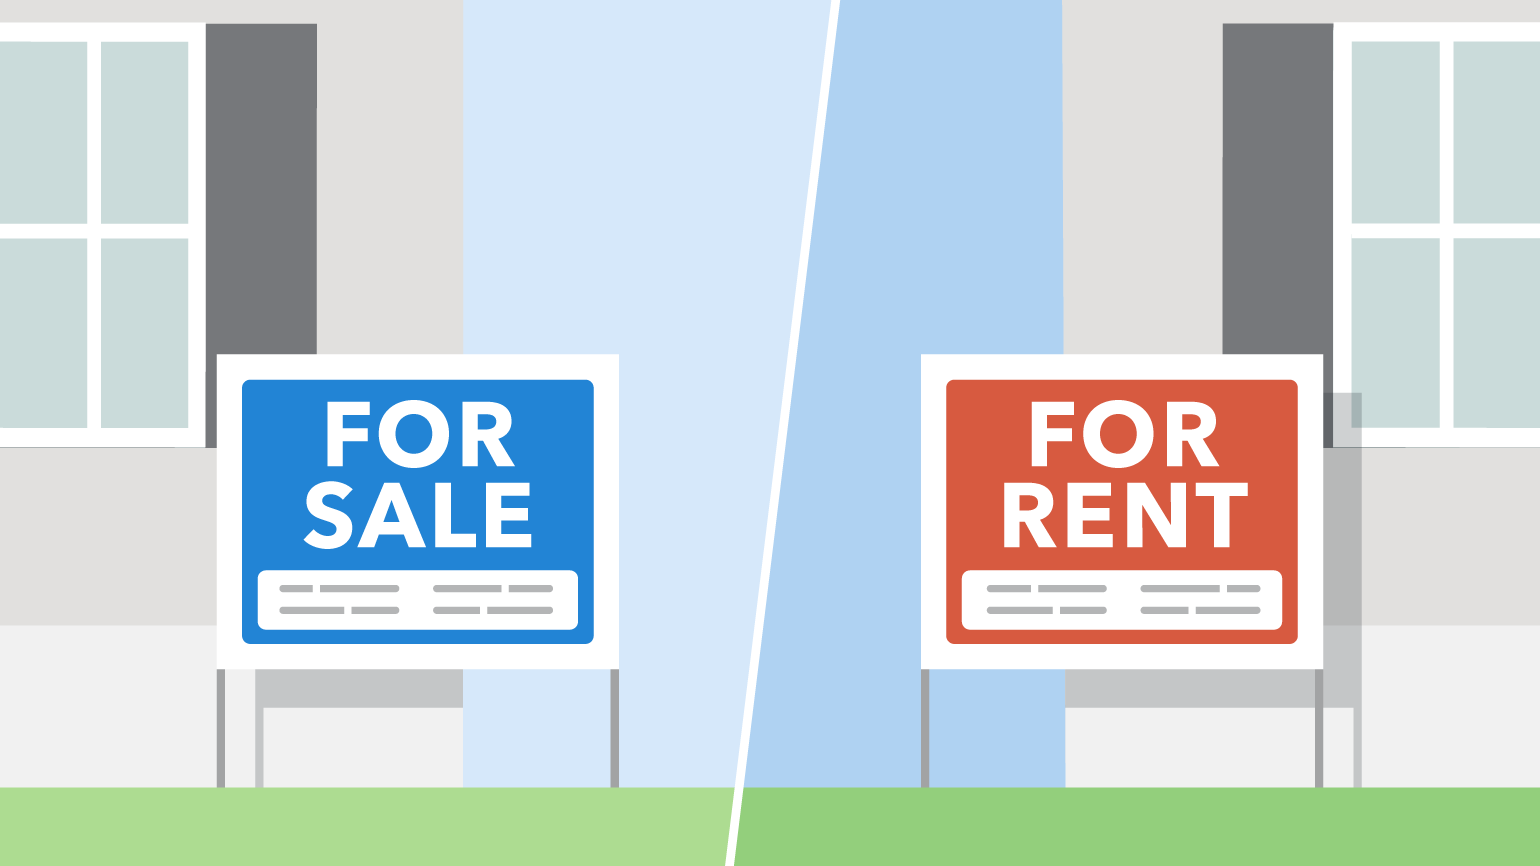 making the decision to rent or buy